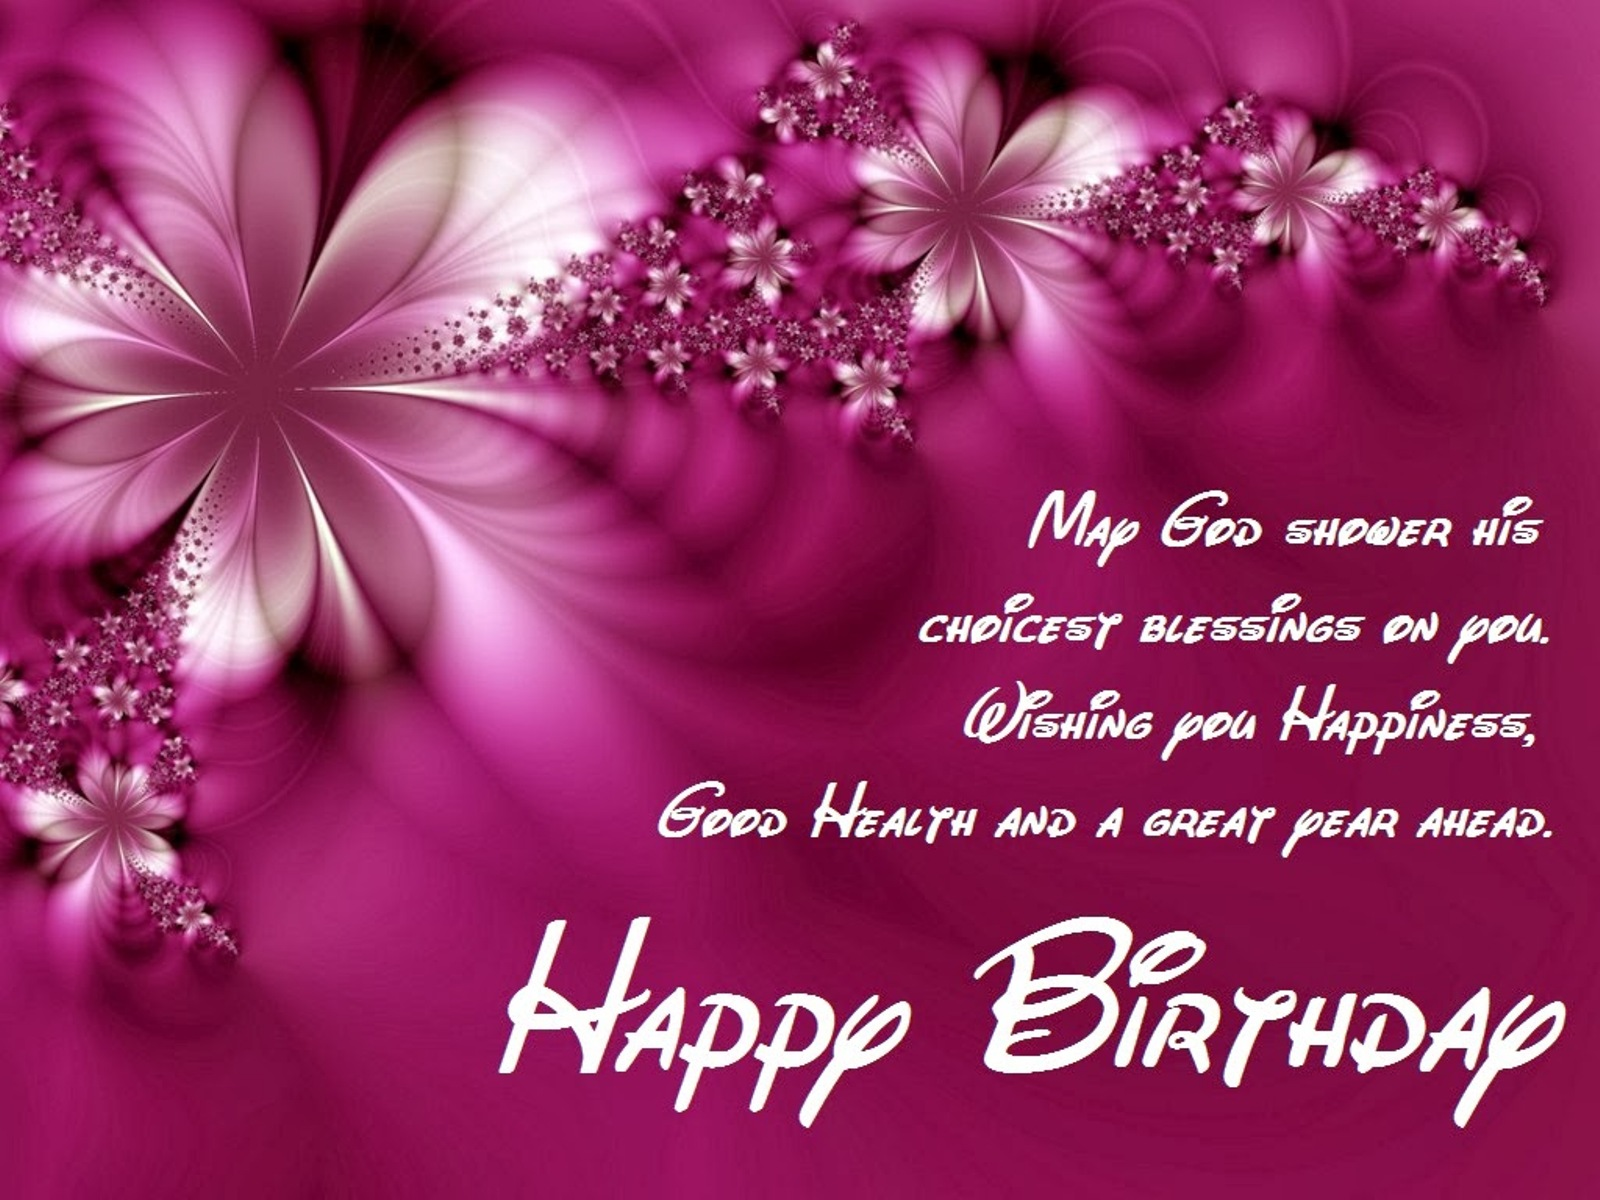 birthday greeting pictures for facebook ; fcd200e53997a267796b5b359da6141a